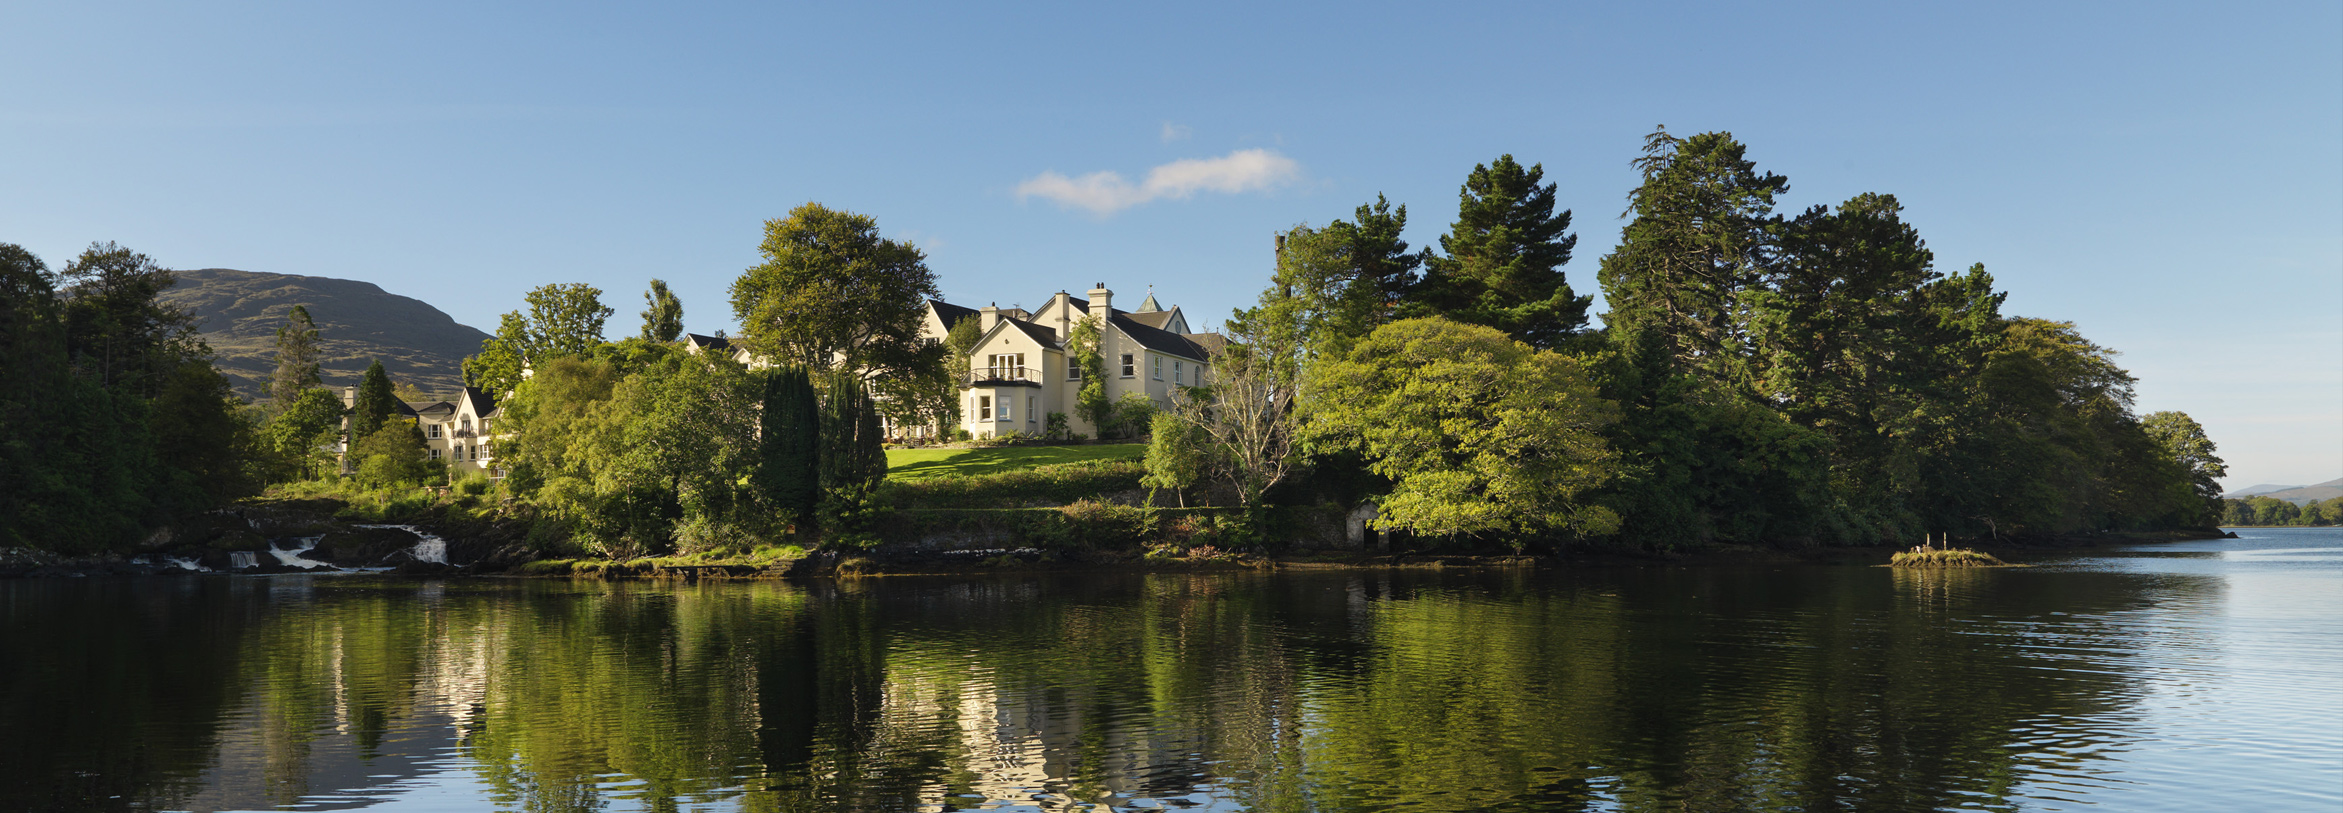 Sheen Falls Lodge – Ireland Luxury Hotel – Ring of Kerry - Ker & Downey